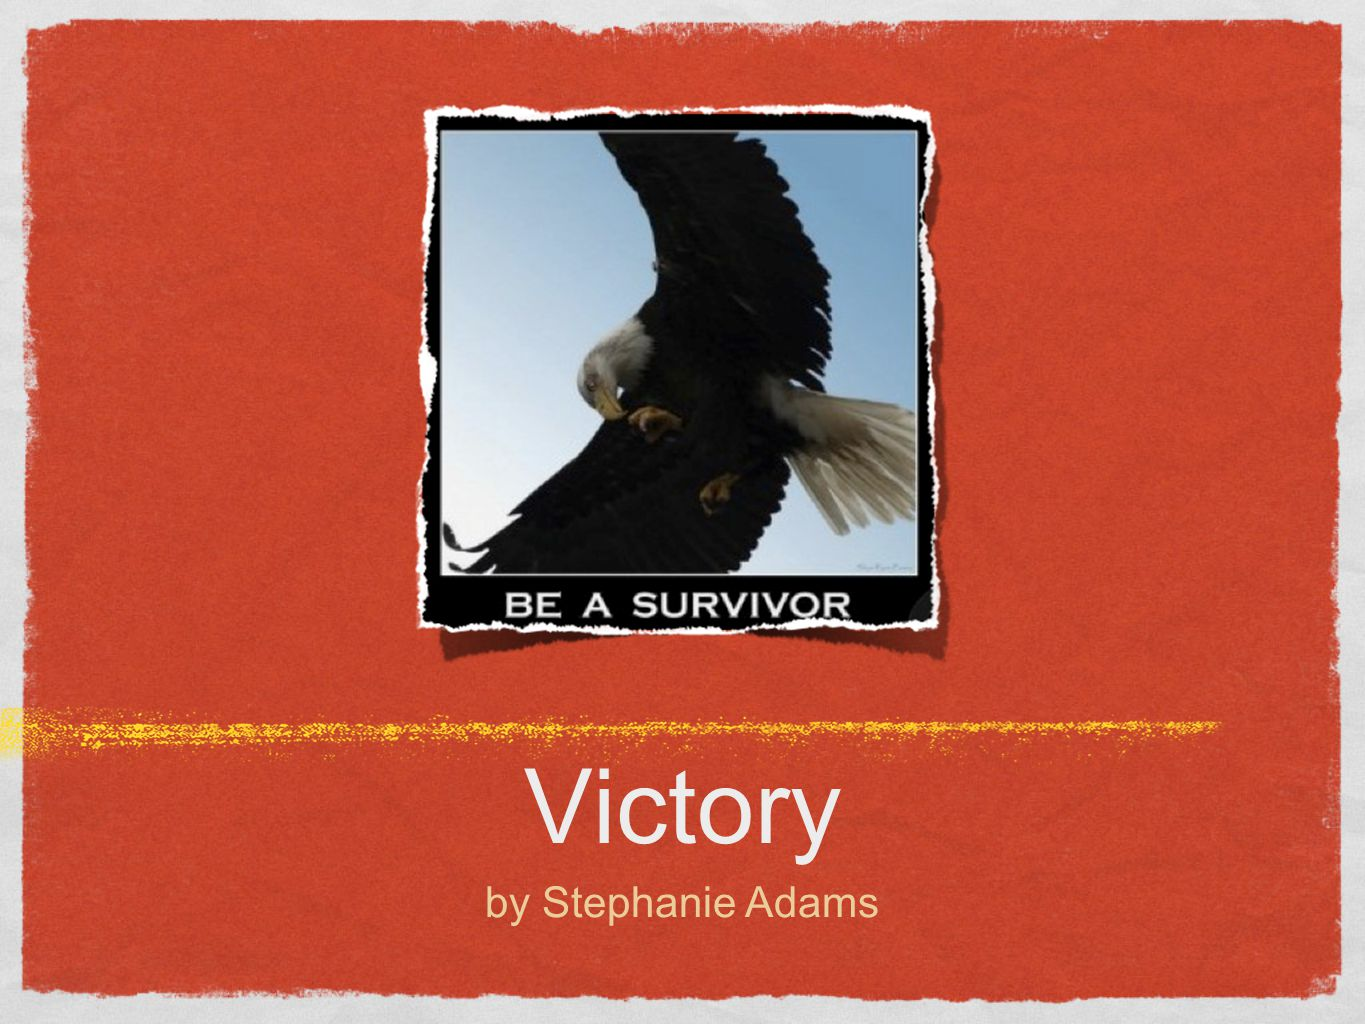 Victory by Stephanie Adams